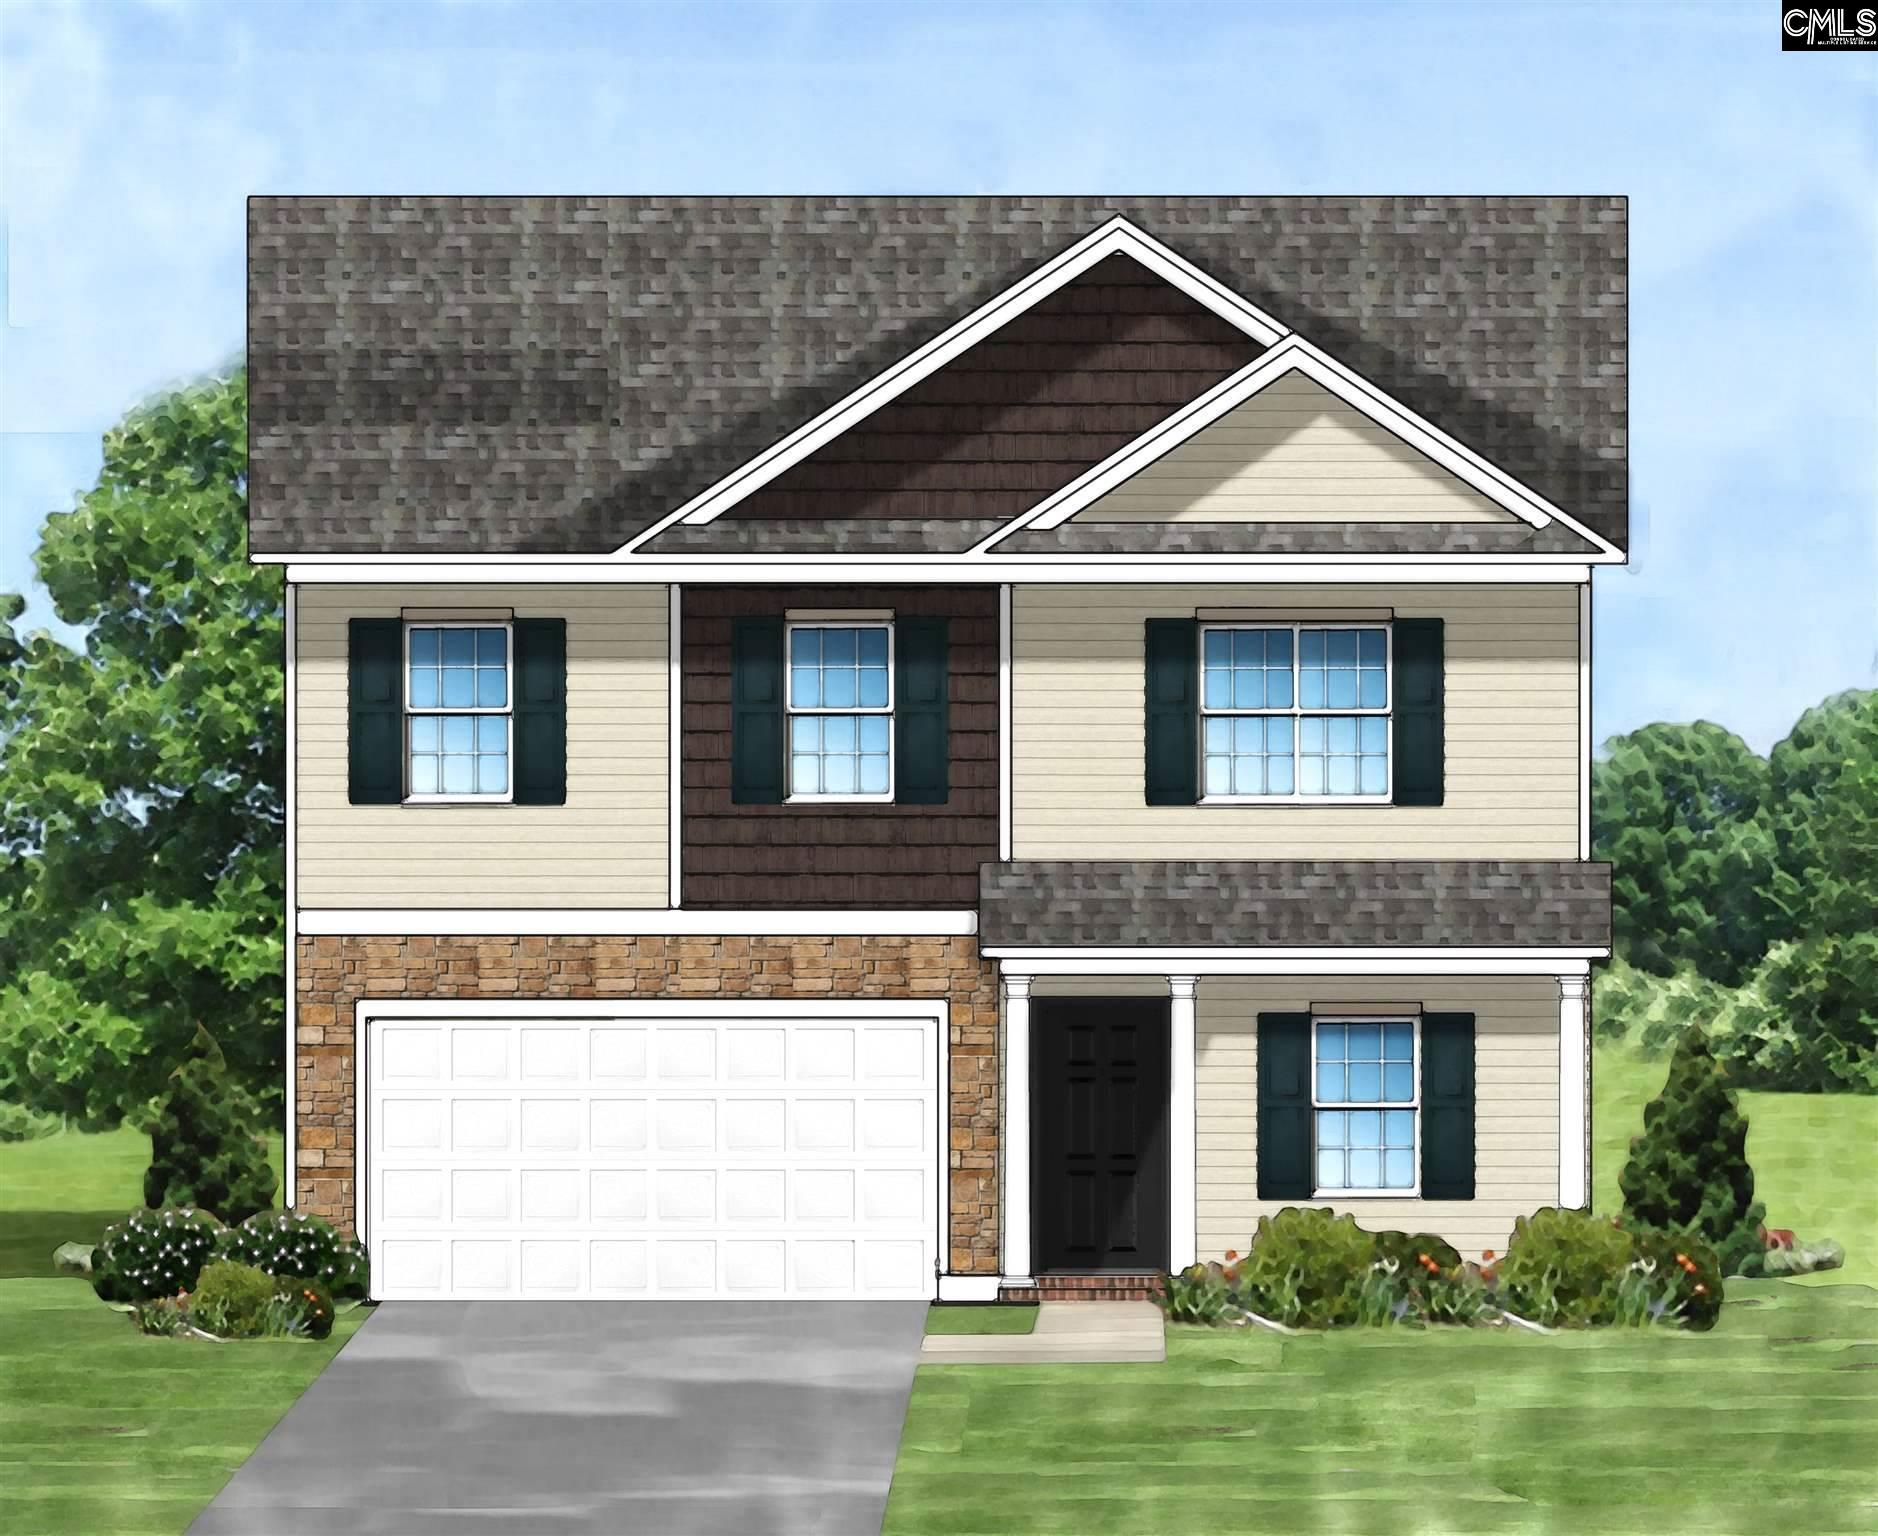 427 Fairford Blythewood, SC 29016